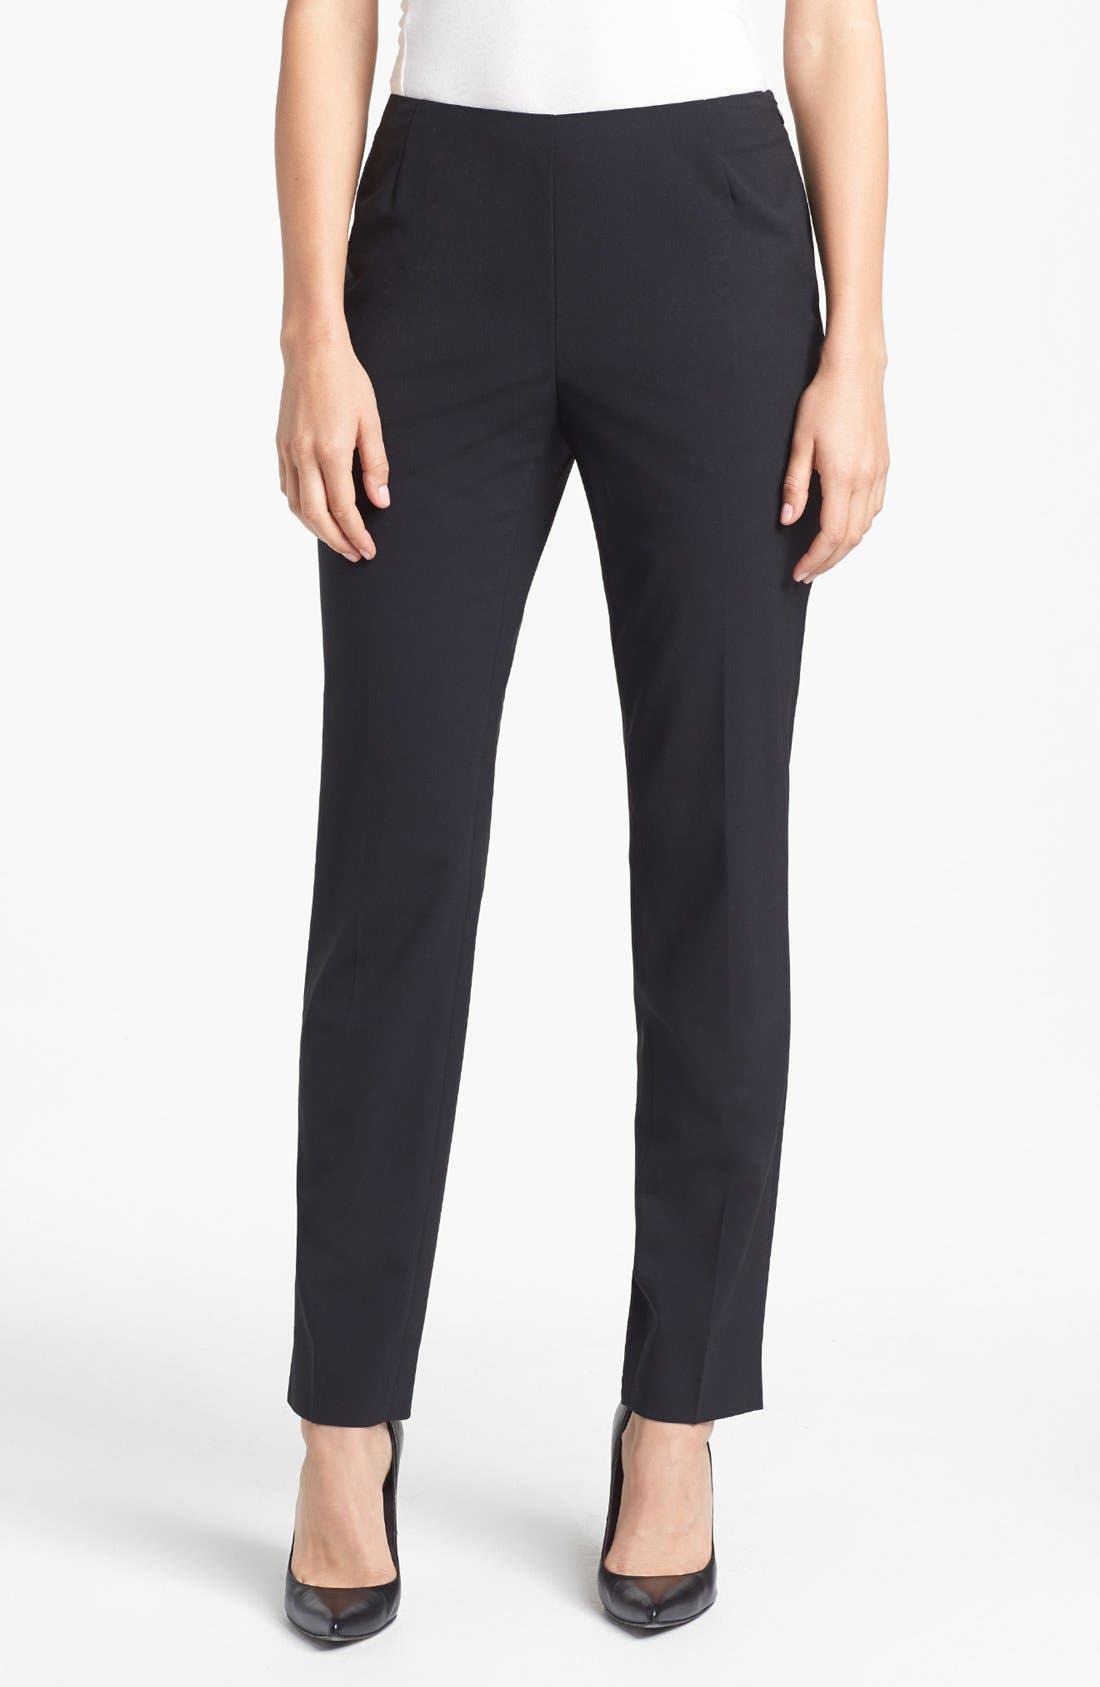 Alternate Image 1 Selected - Lafayette 148 New York Side Zip Stretch Wool Pants